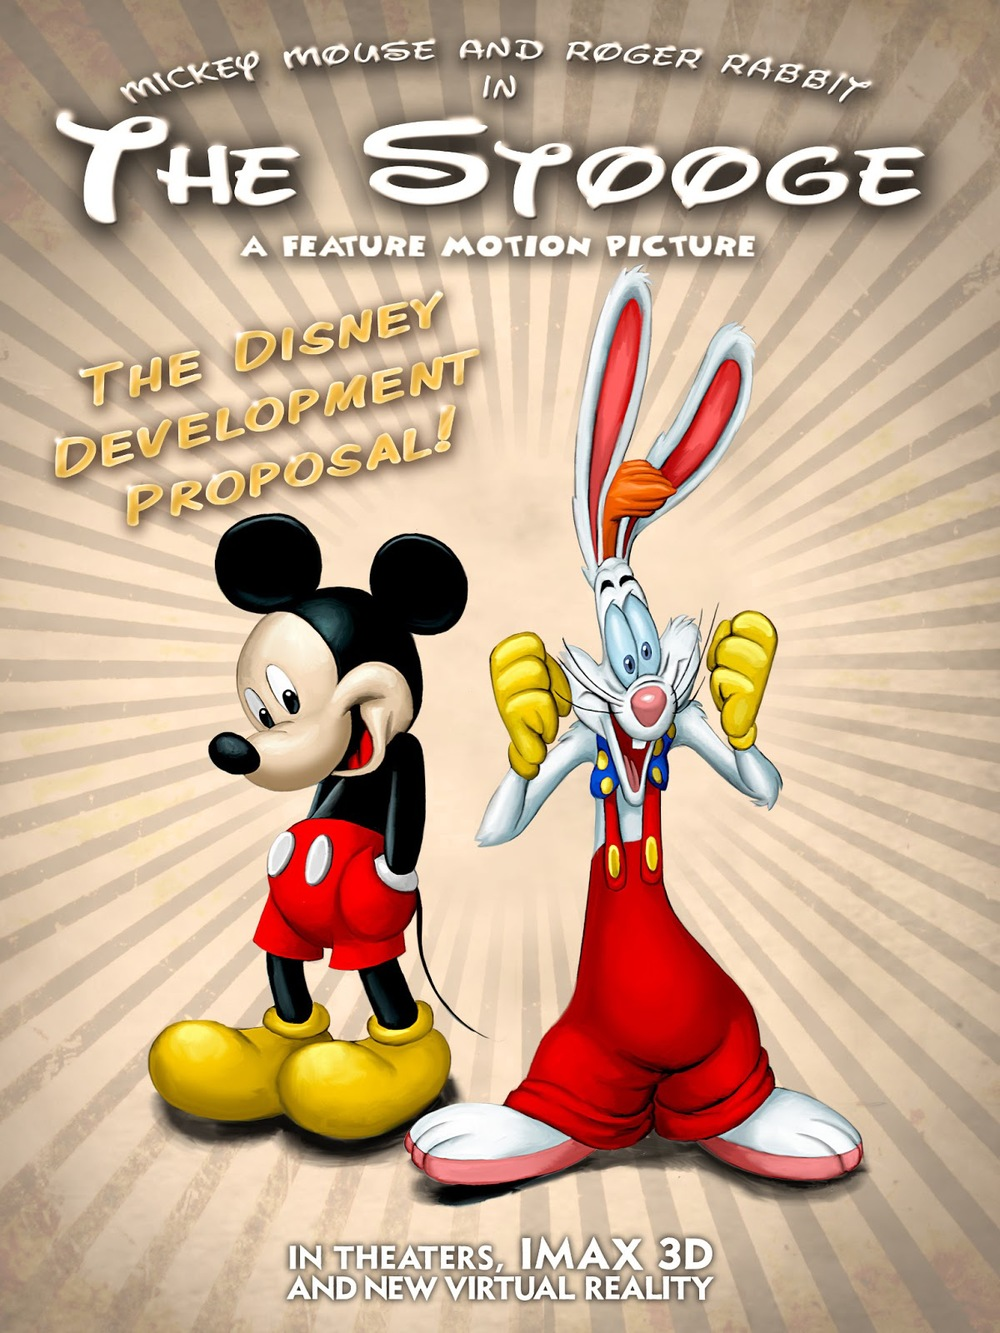 Mickey Mouse and Roger Rabbit to Star in THE STOOGE? — GeekTyrant